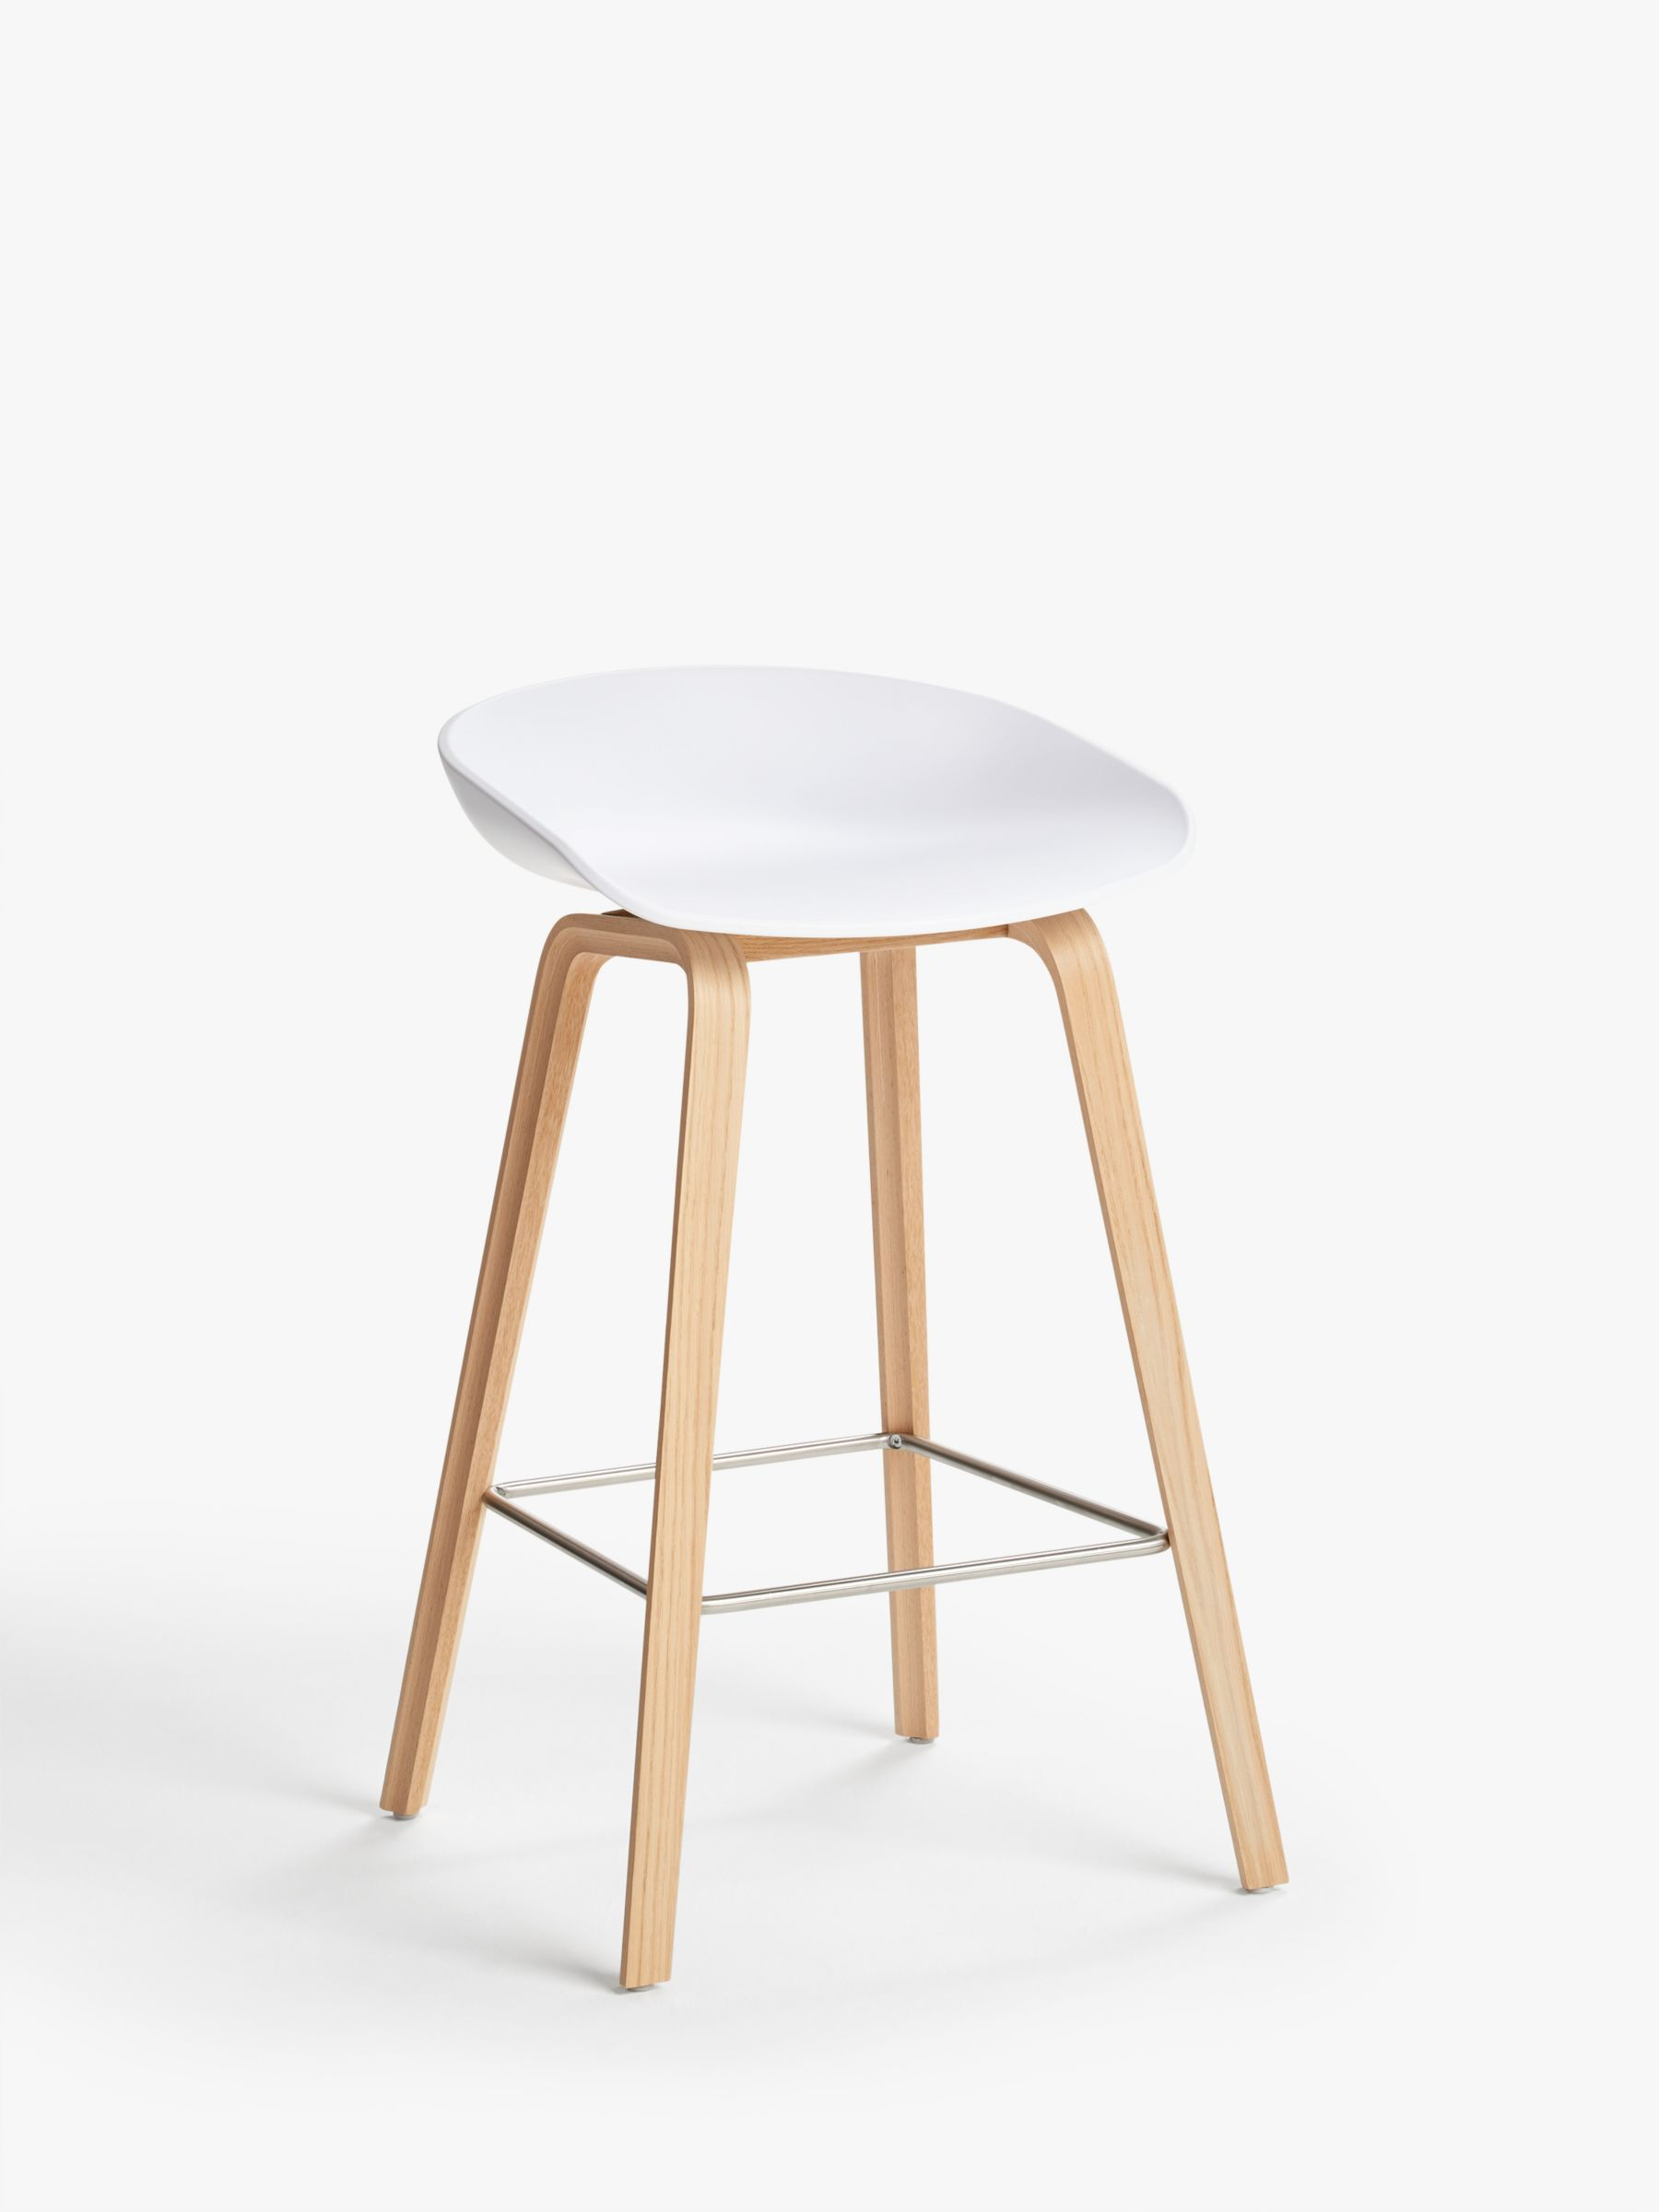 spinning top chair south africa bedroom john lewis bar stools chairs breakfast partners hay about a stool aas32 white